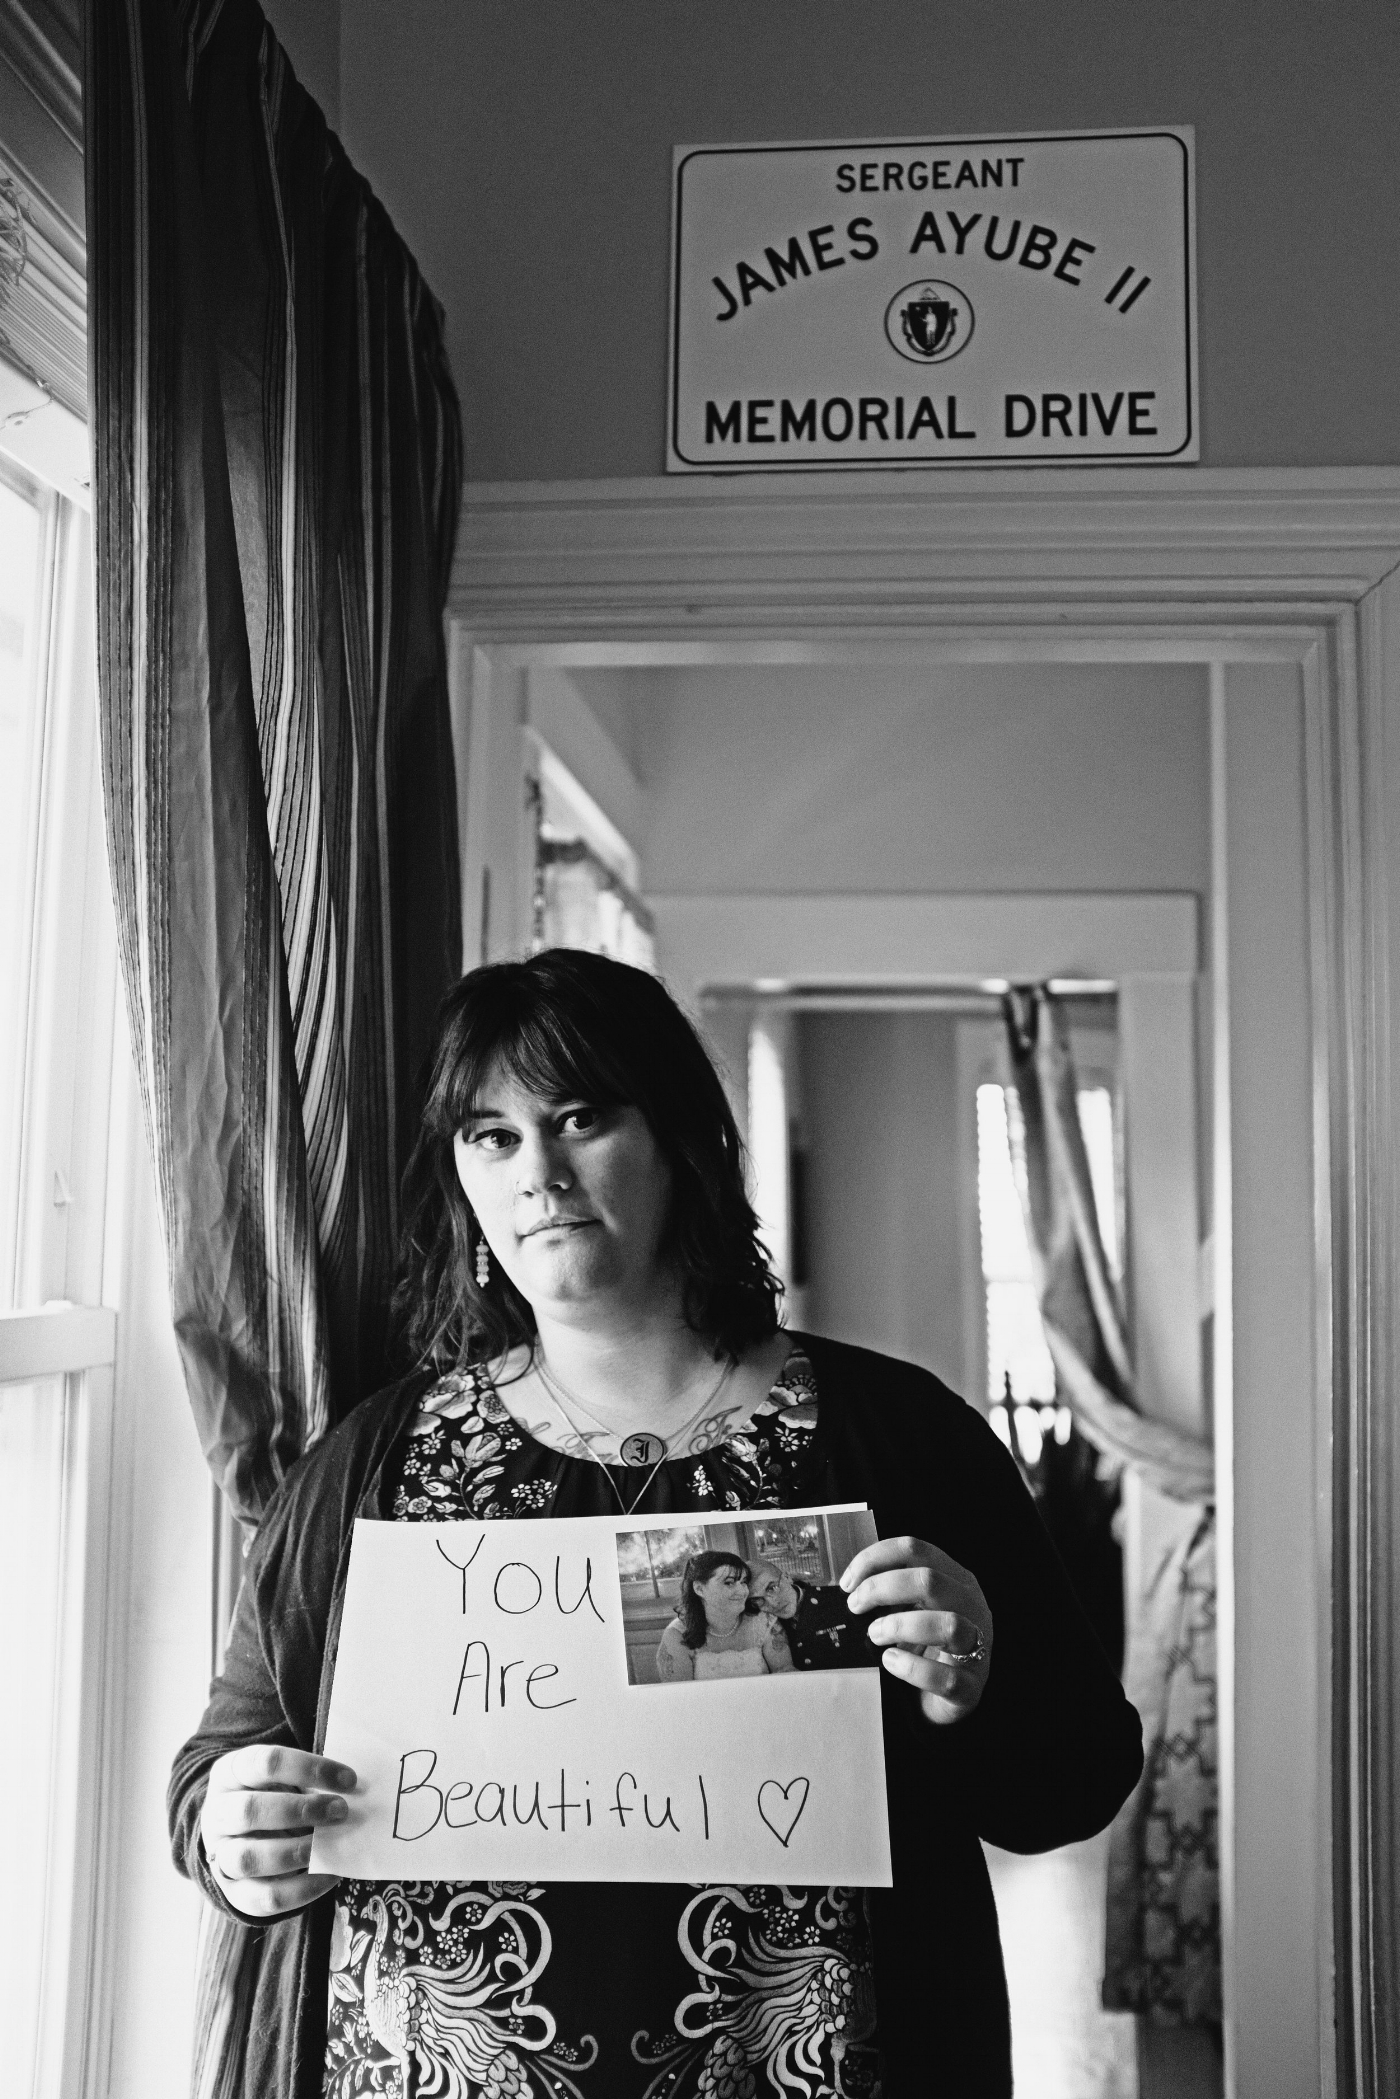 "Lauren Ayube holds a ""you are beautiful"" message for her husband, James, together with a photo from their wedding day. Lauren lives in Salem where there is a bypass road named in honor of James. Following her husband's death, Lauren dedicated her work to outreach for veterans and is pursuing a Master of Social Work. (Photograph by Thi Linh Wernau)"